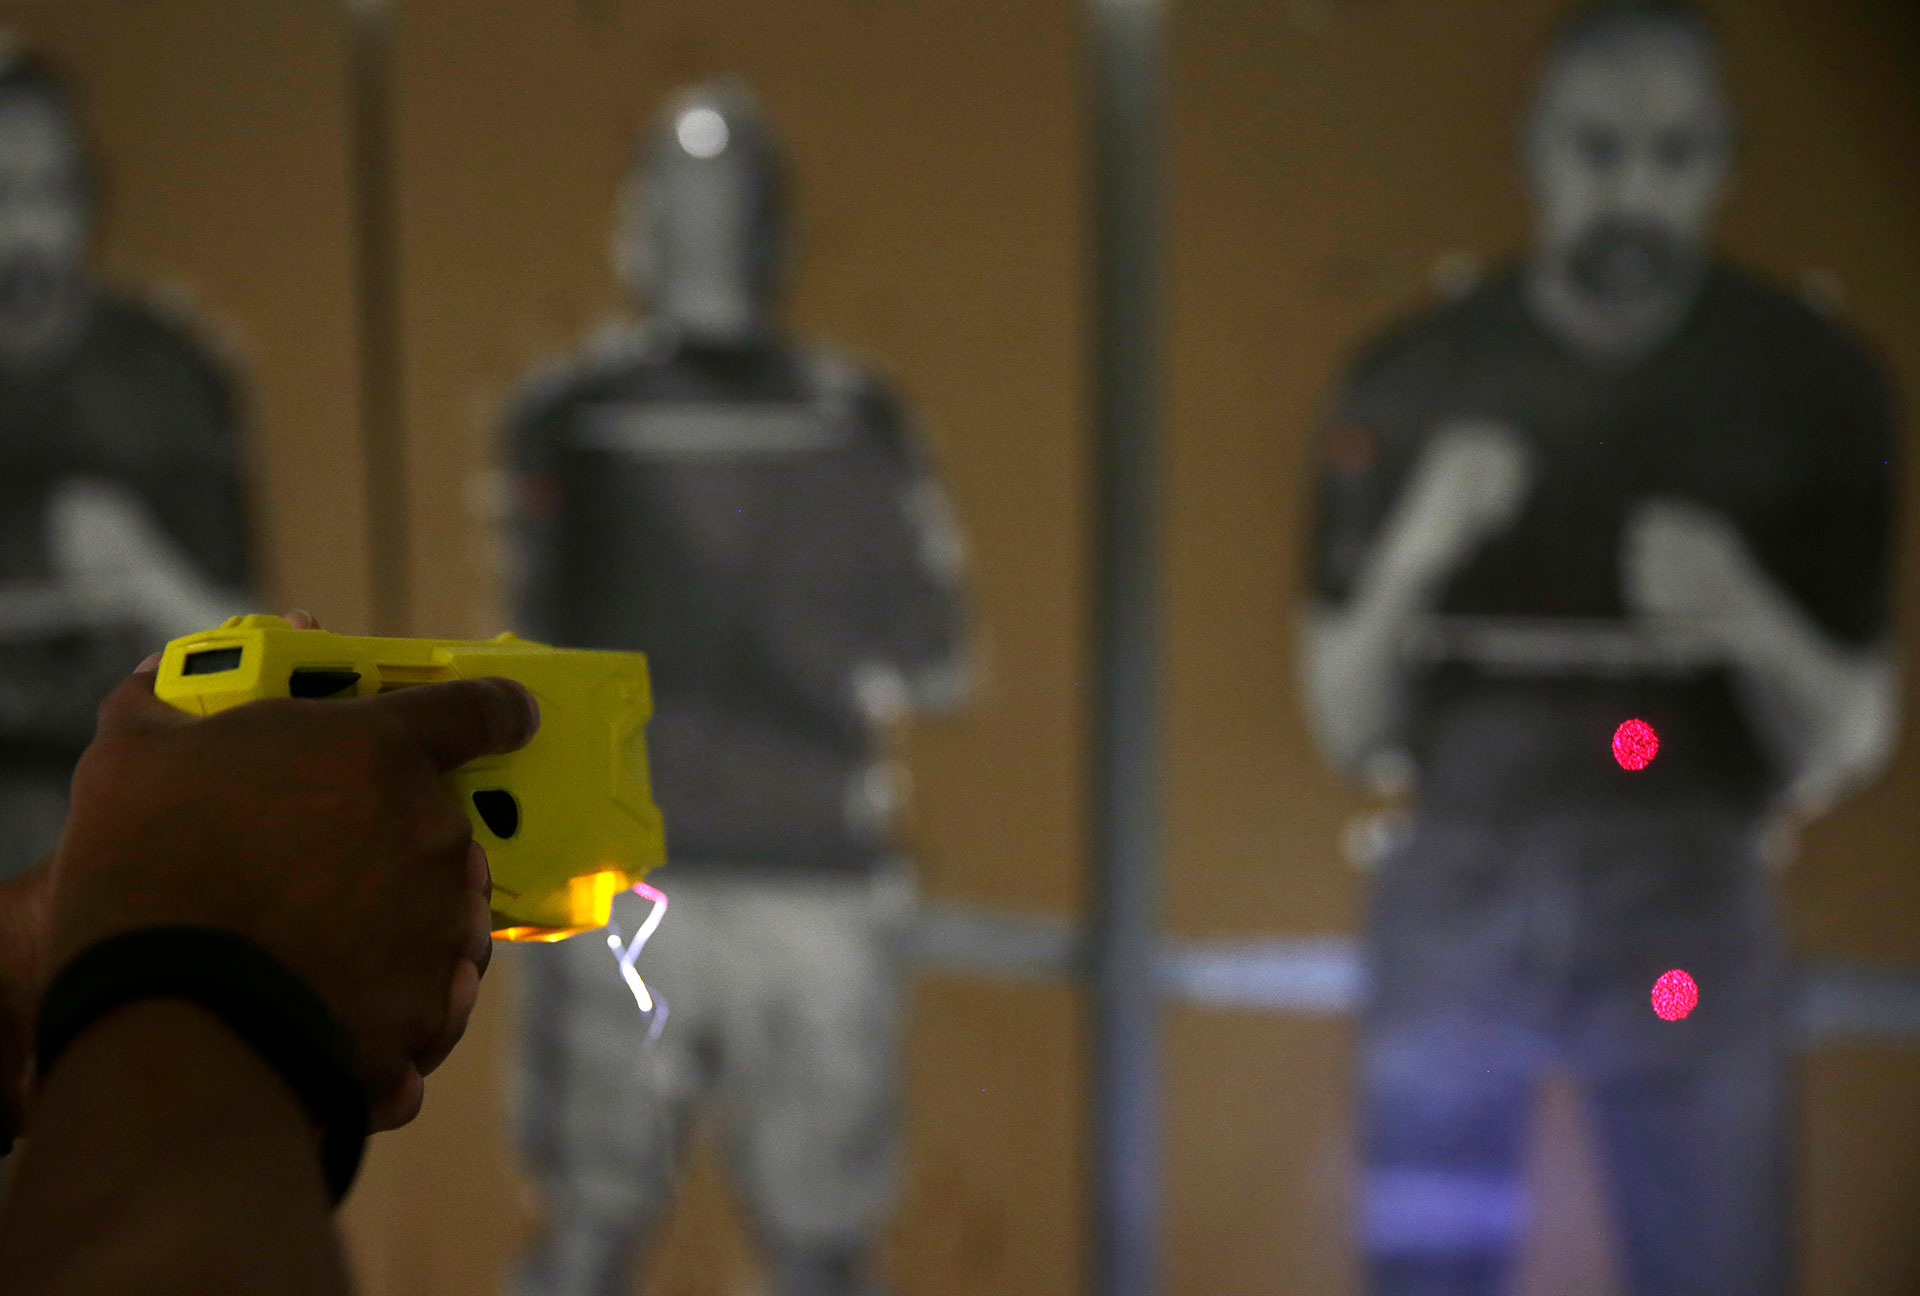 Shock Tactics: The quiet disappearance of Taser's potent X26